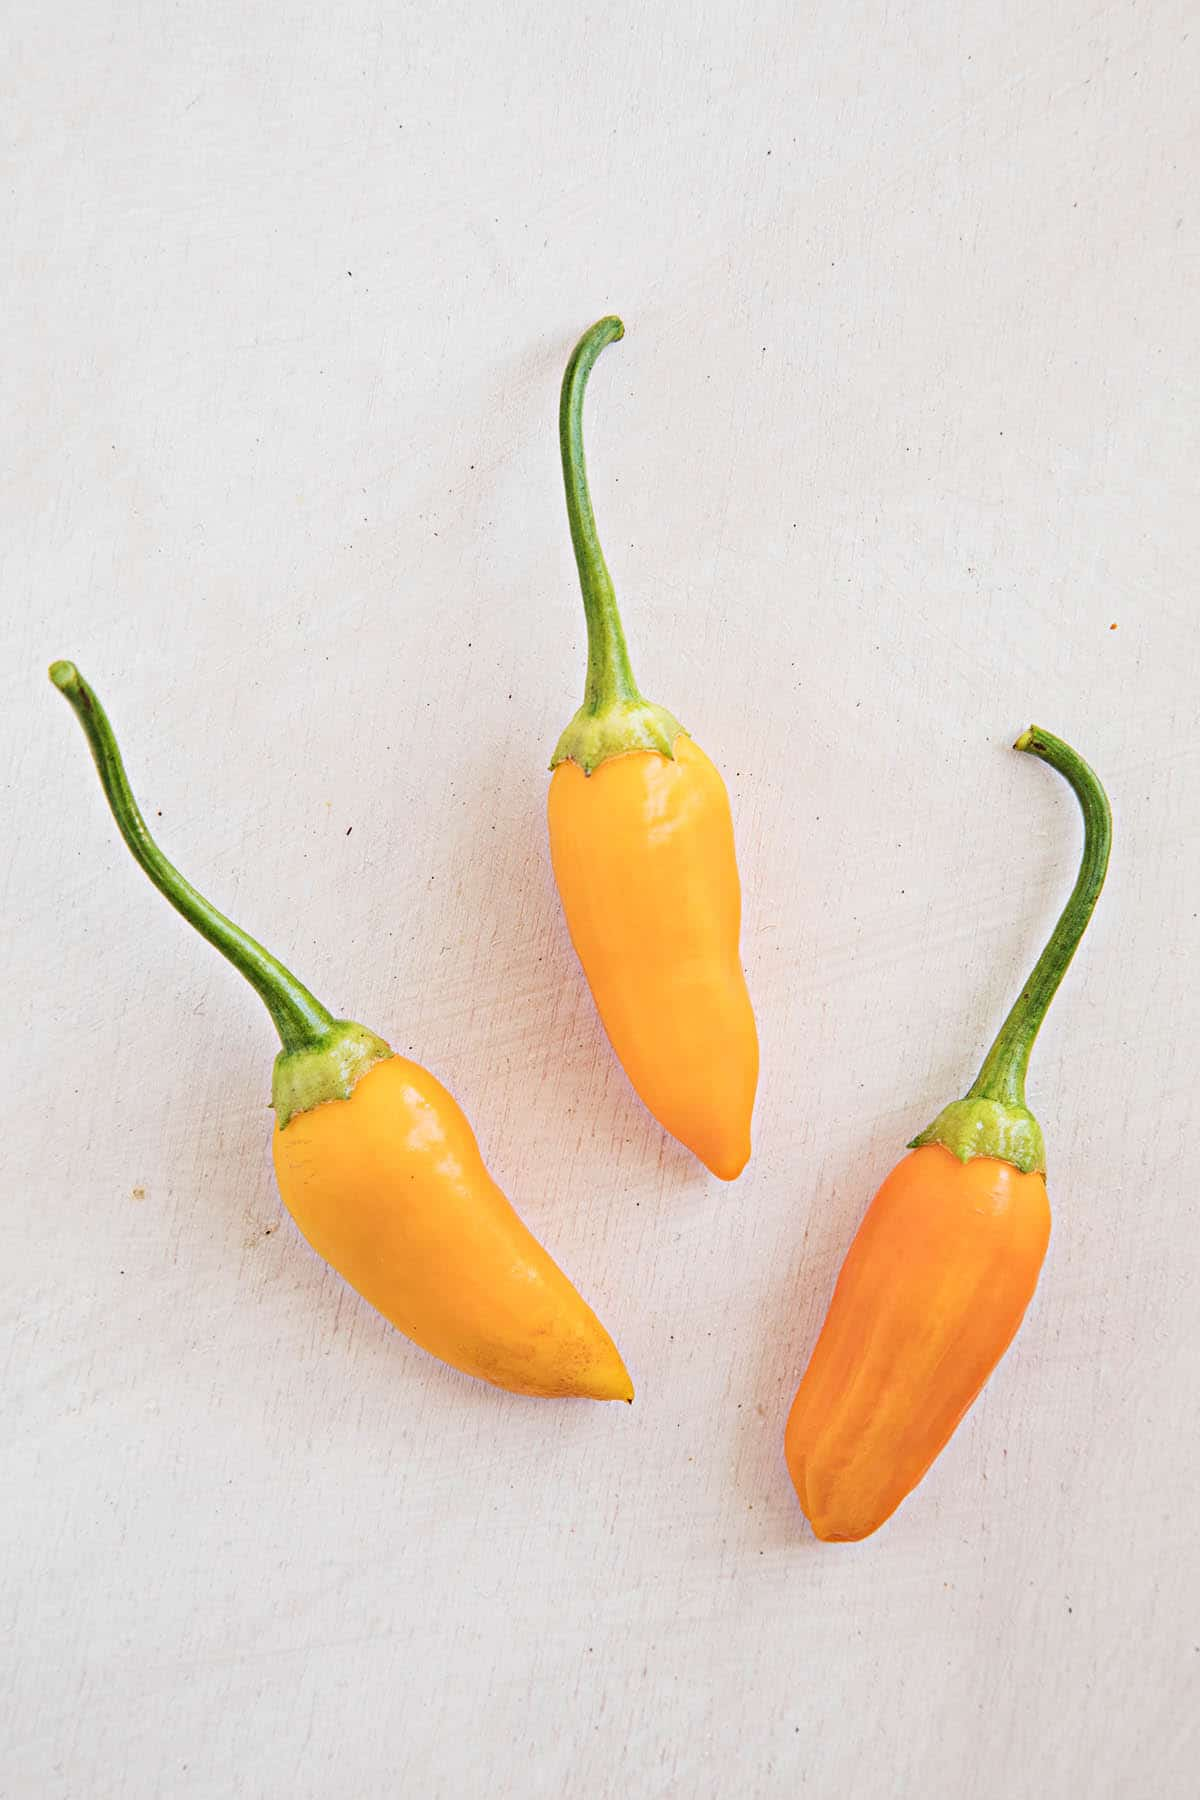 Aji Habanero Chili Peppers